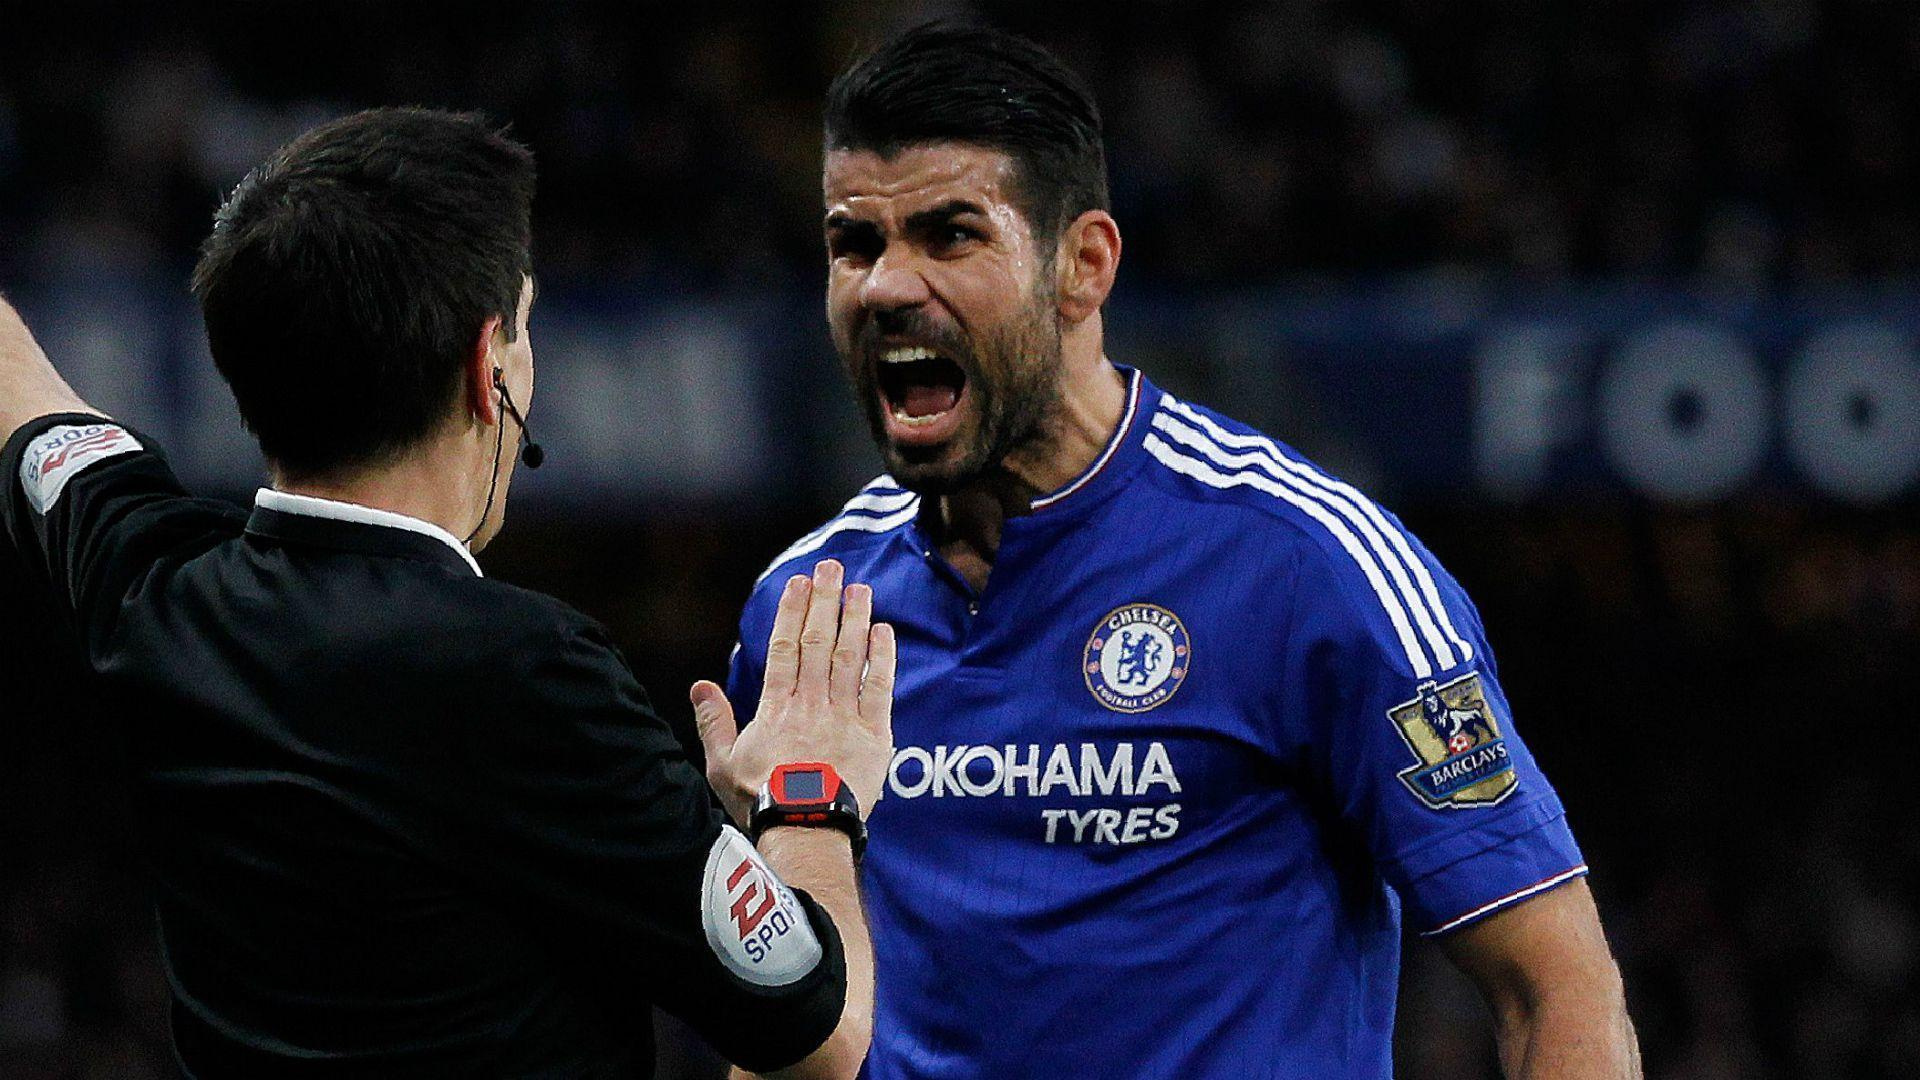 Diego Costa Wallpapers Wallpaper Cave HD Wallpapers Download Free Images Wallpaper [1000image.com]